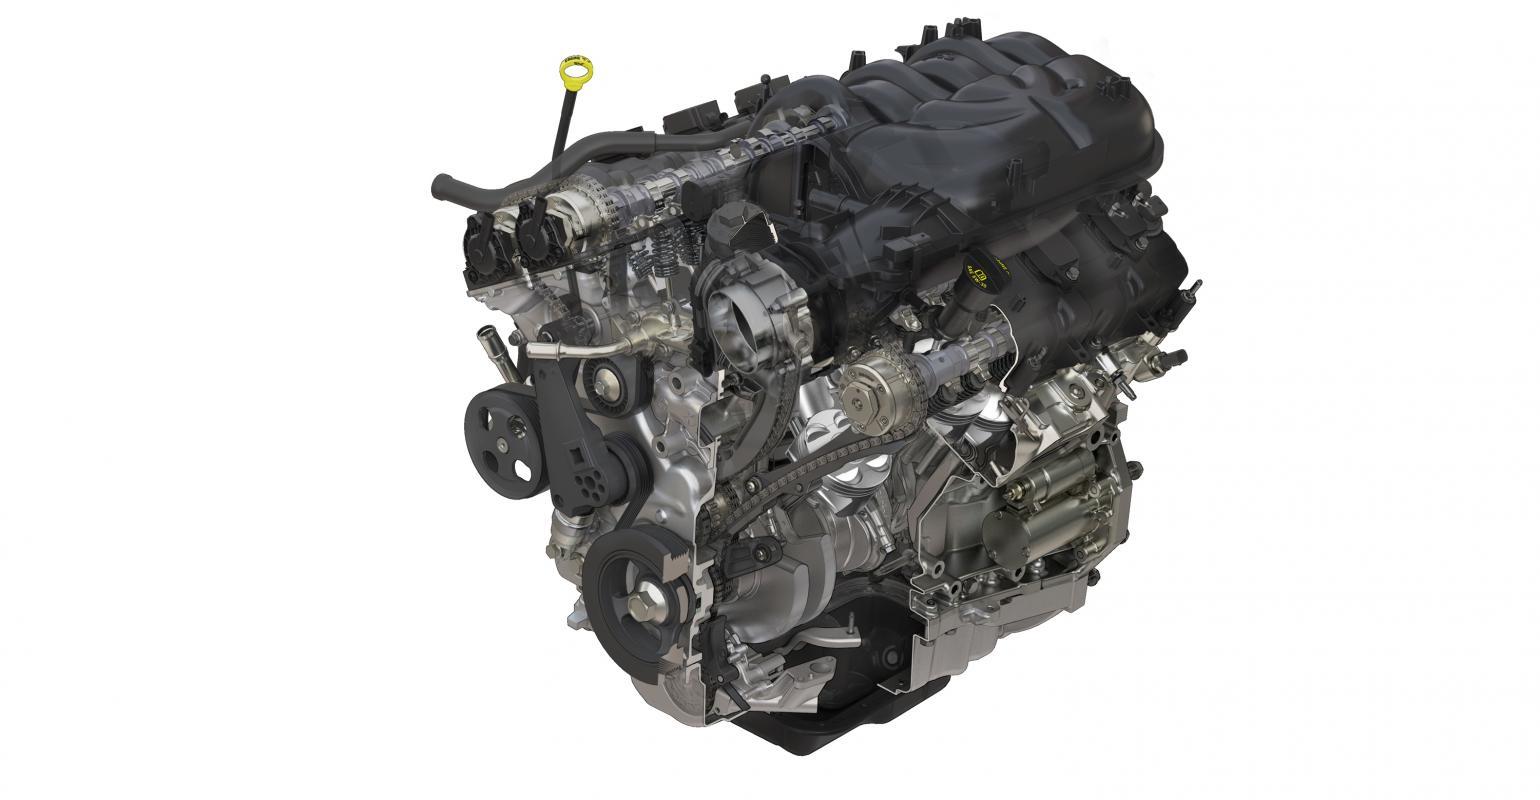 GDI Dominates Ward's 10 Best Engines List | WardsAuto